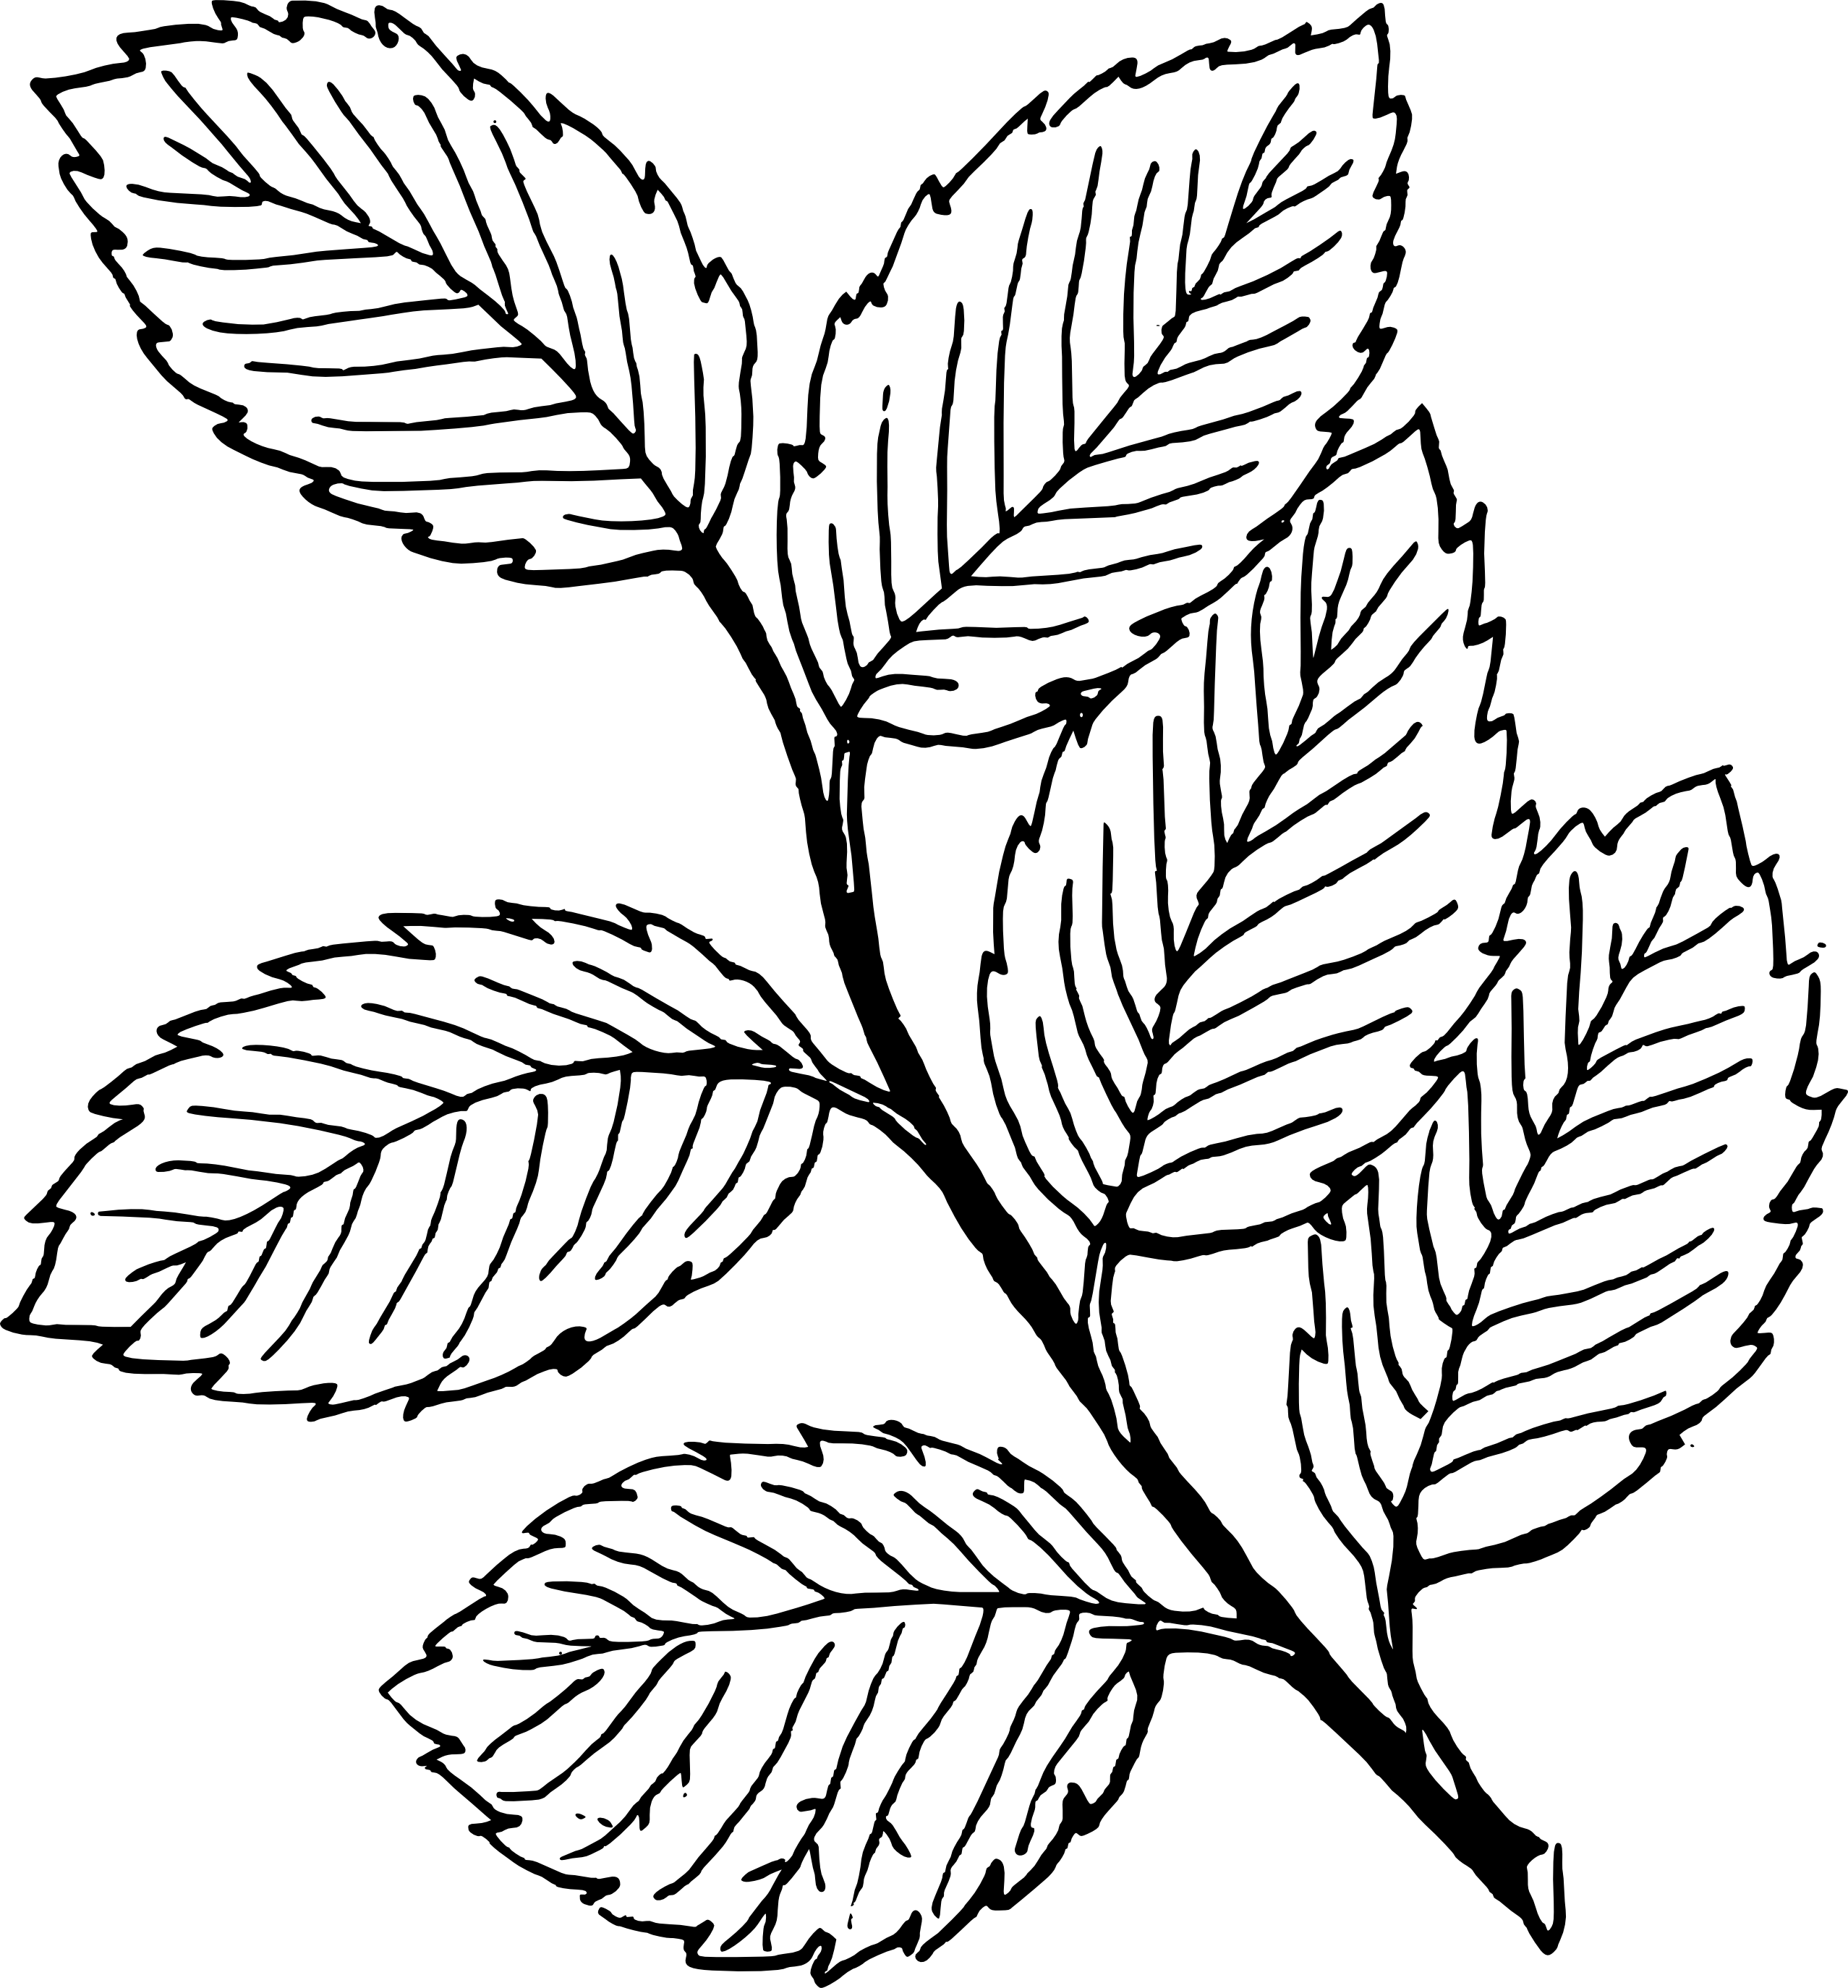 2555x2748 Fall Black And White Fall Leaf Clipart Black And White Free 2